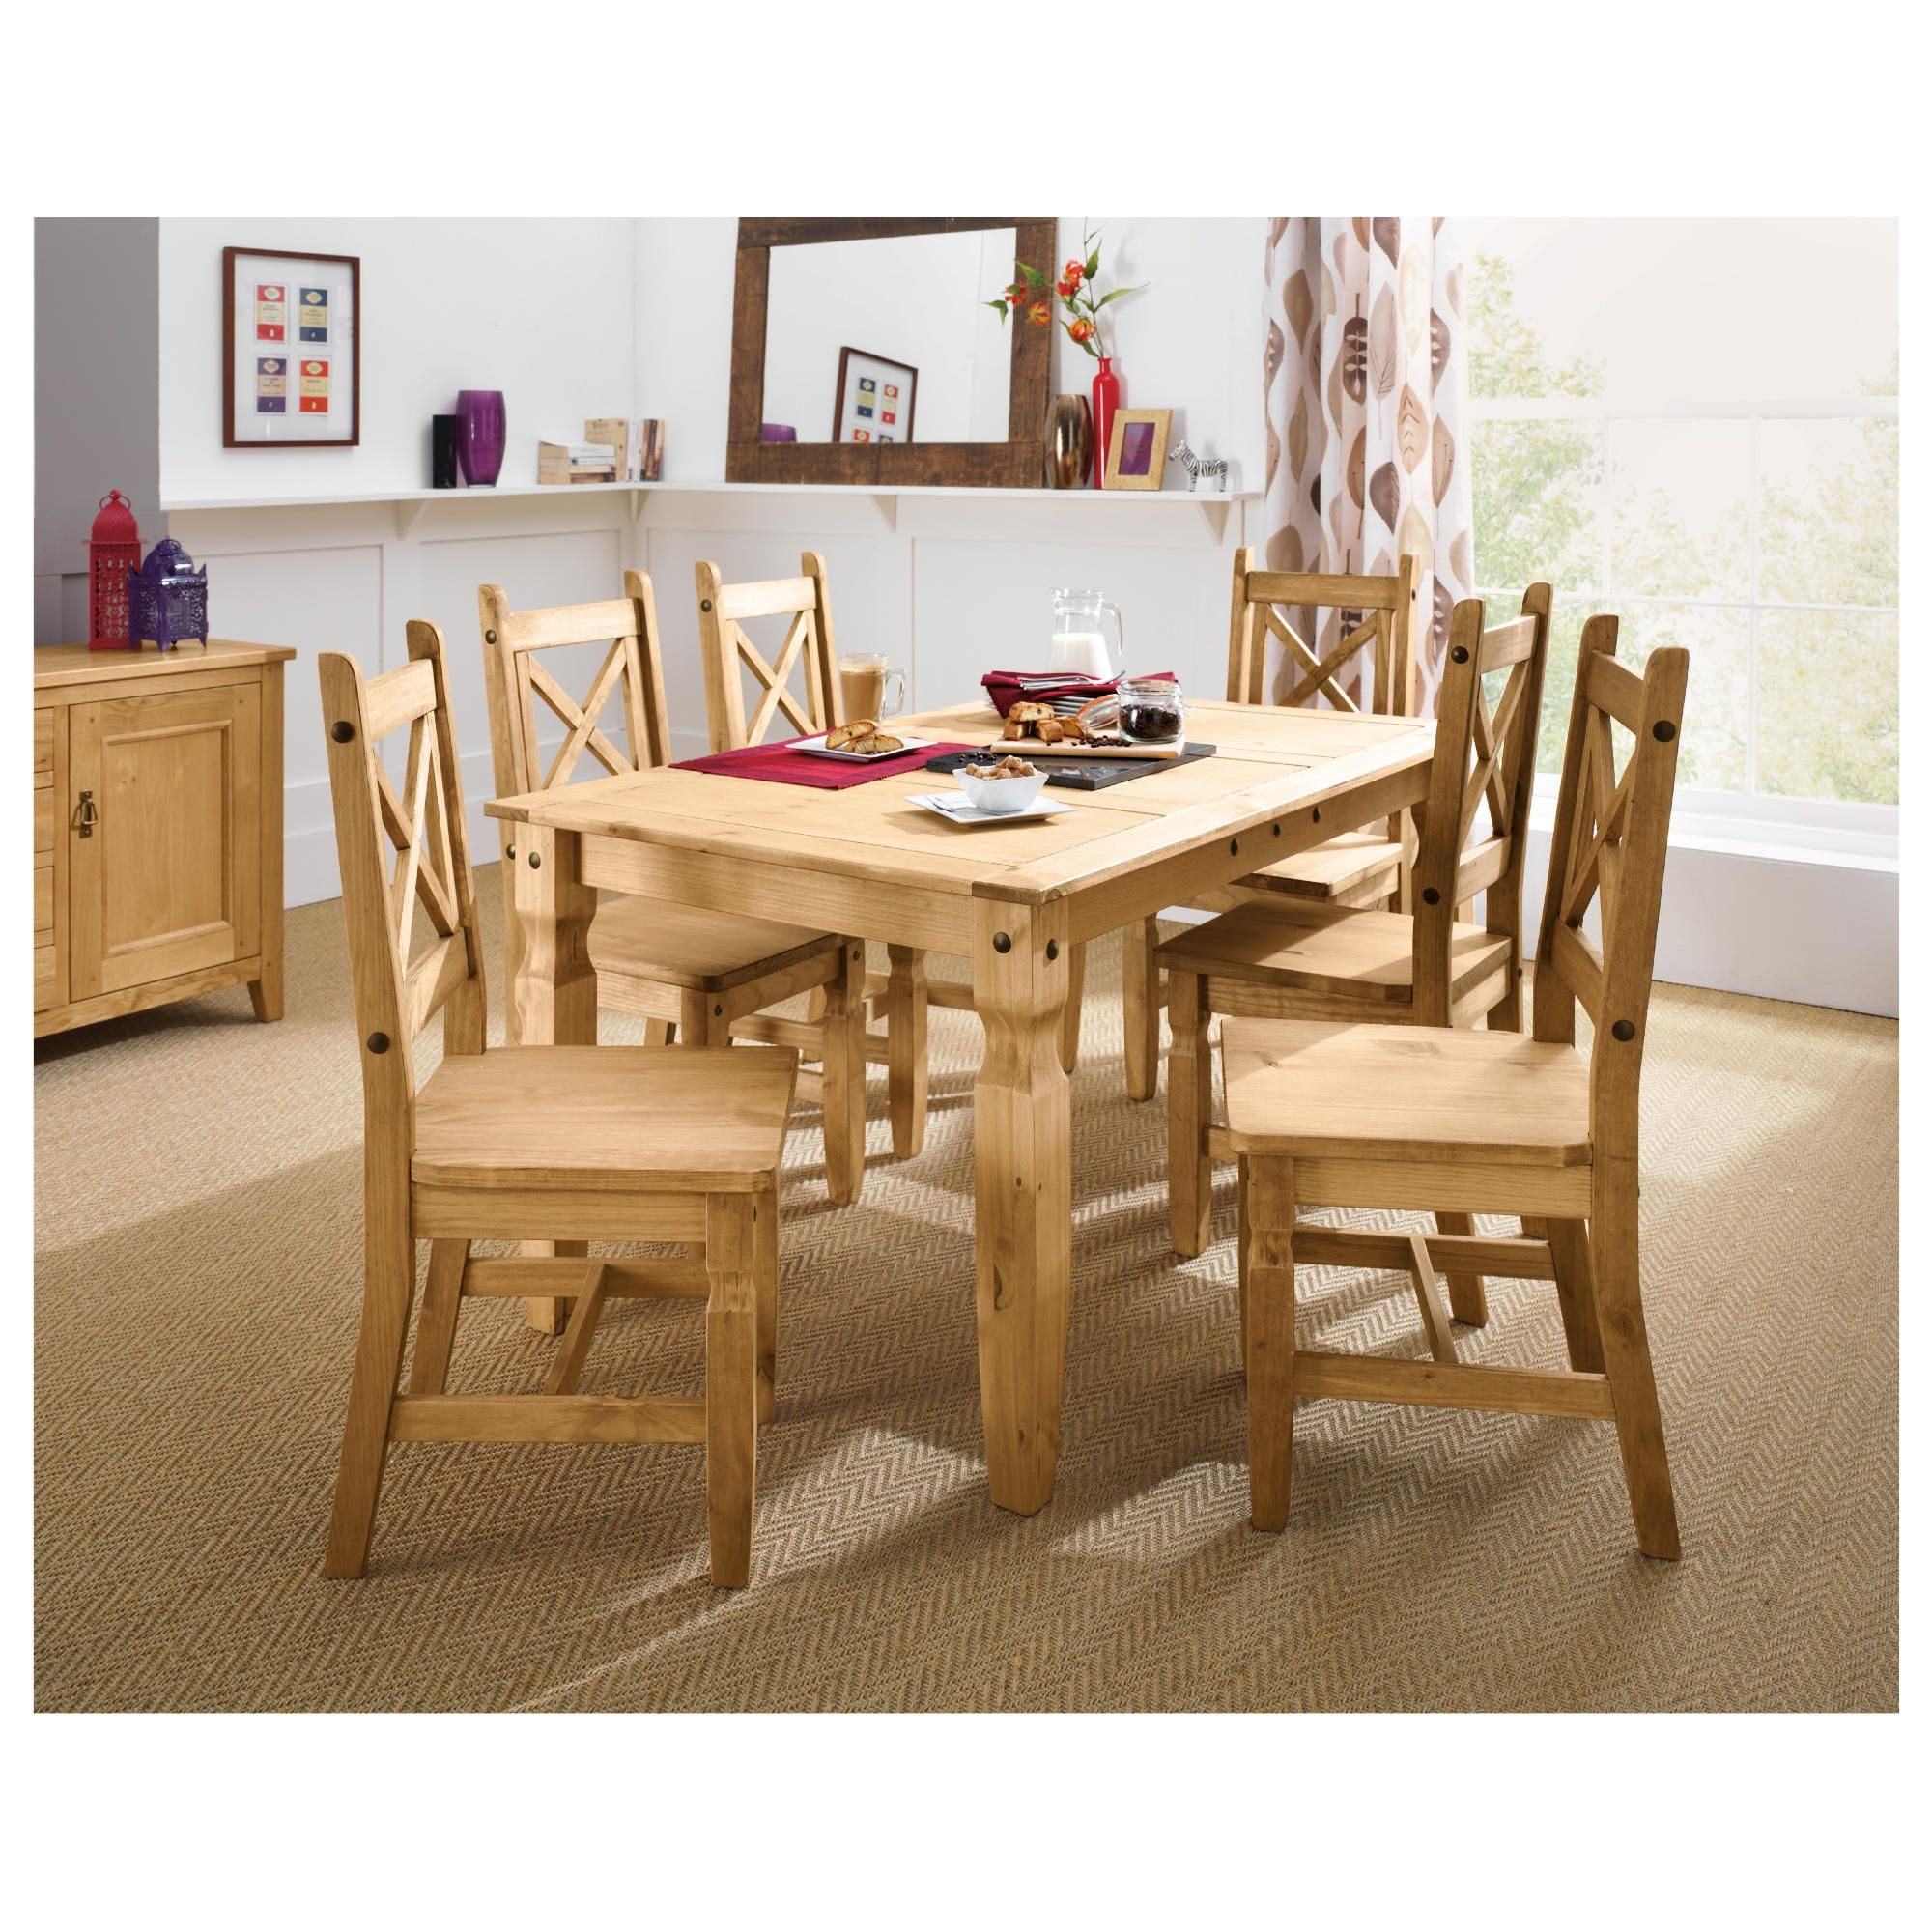 Cordoba 6 Seater Dining Set. at Tescos Direct